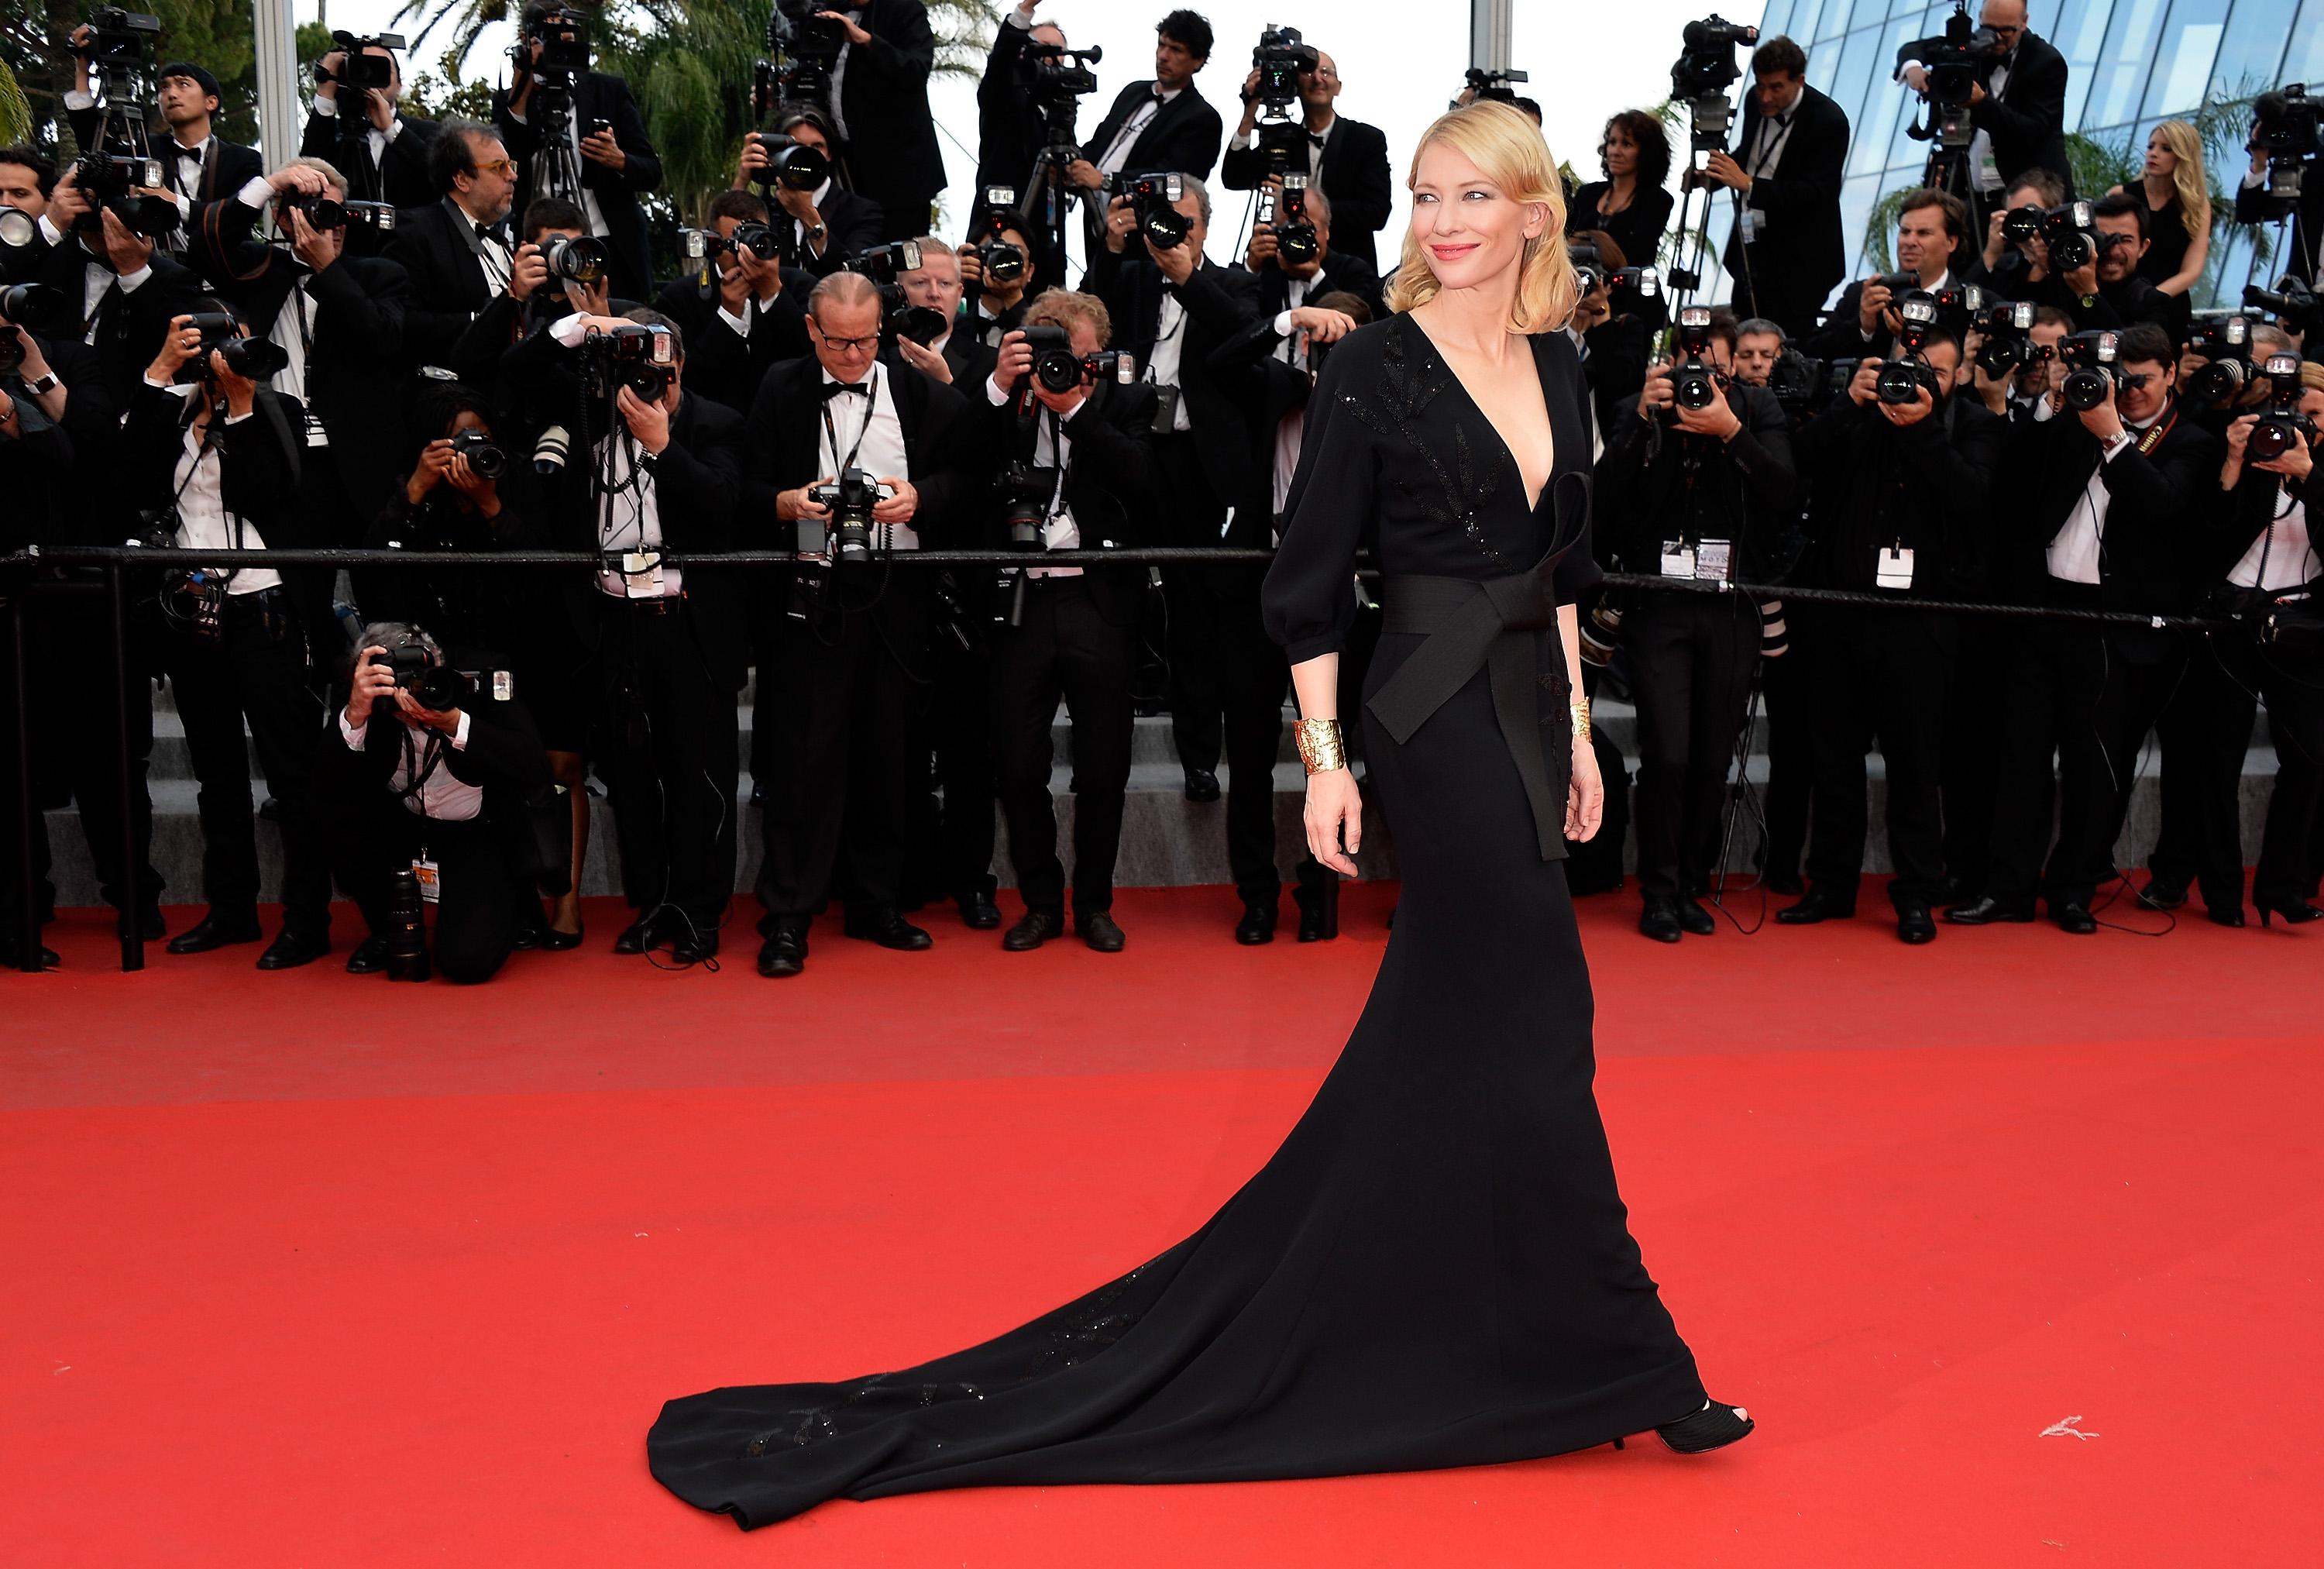 Cate Blanchett em Armani, Festival de Cinema de Cannes 2017 © Getty Images